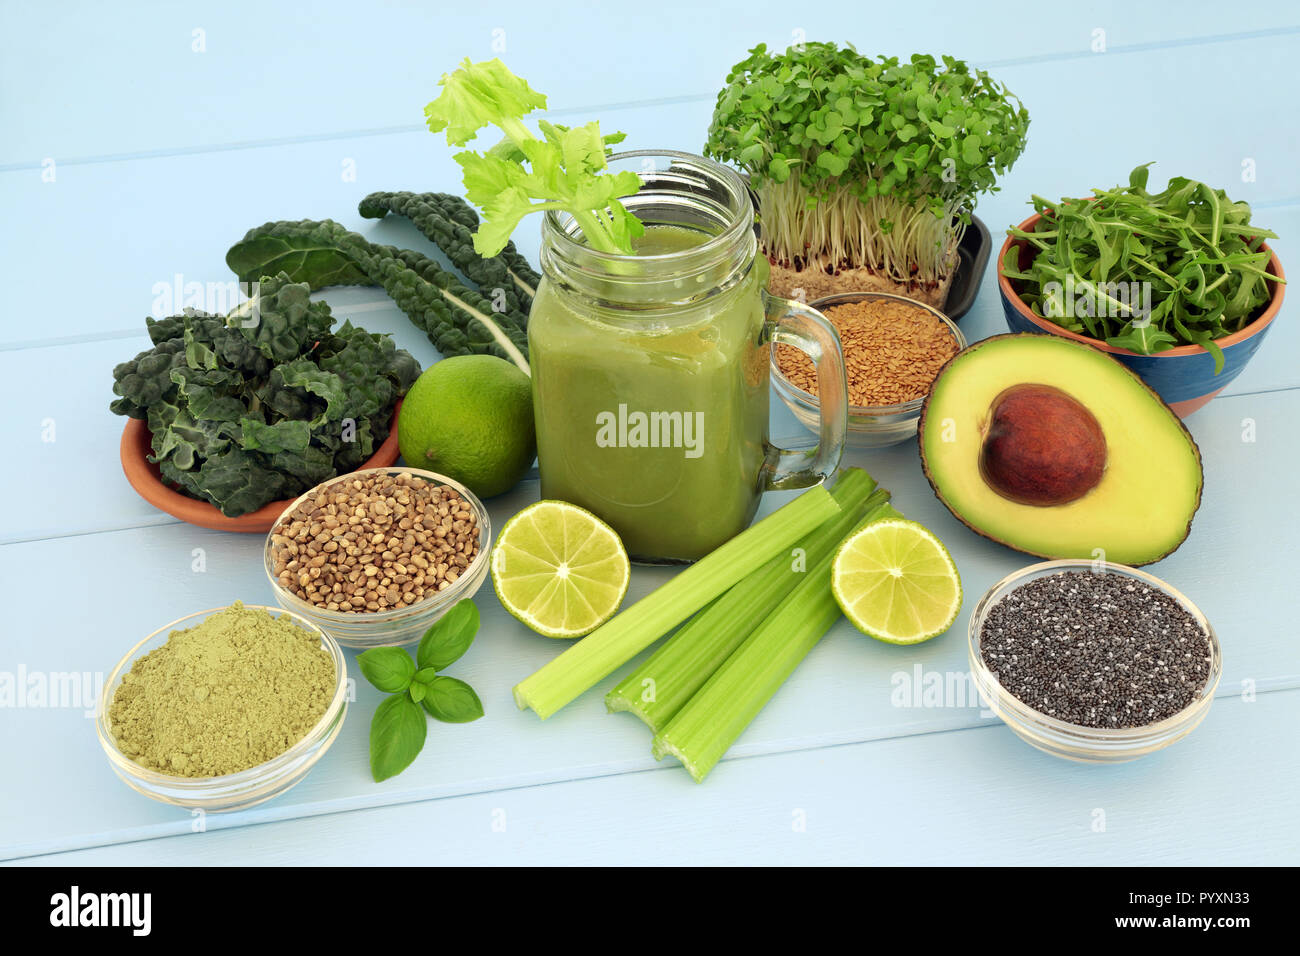 Health Food Vegetable Smoothie Juice Drink With Wheat Grass Powder Chia Flax And Hemp Seed On Blue Wood Background Stock Photo Alamy